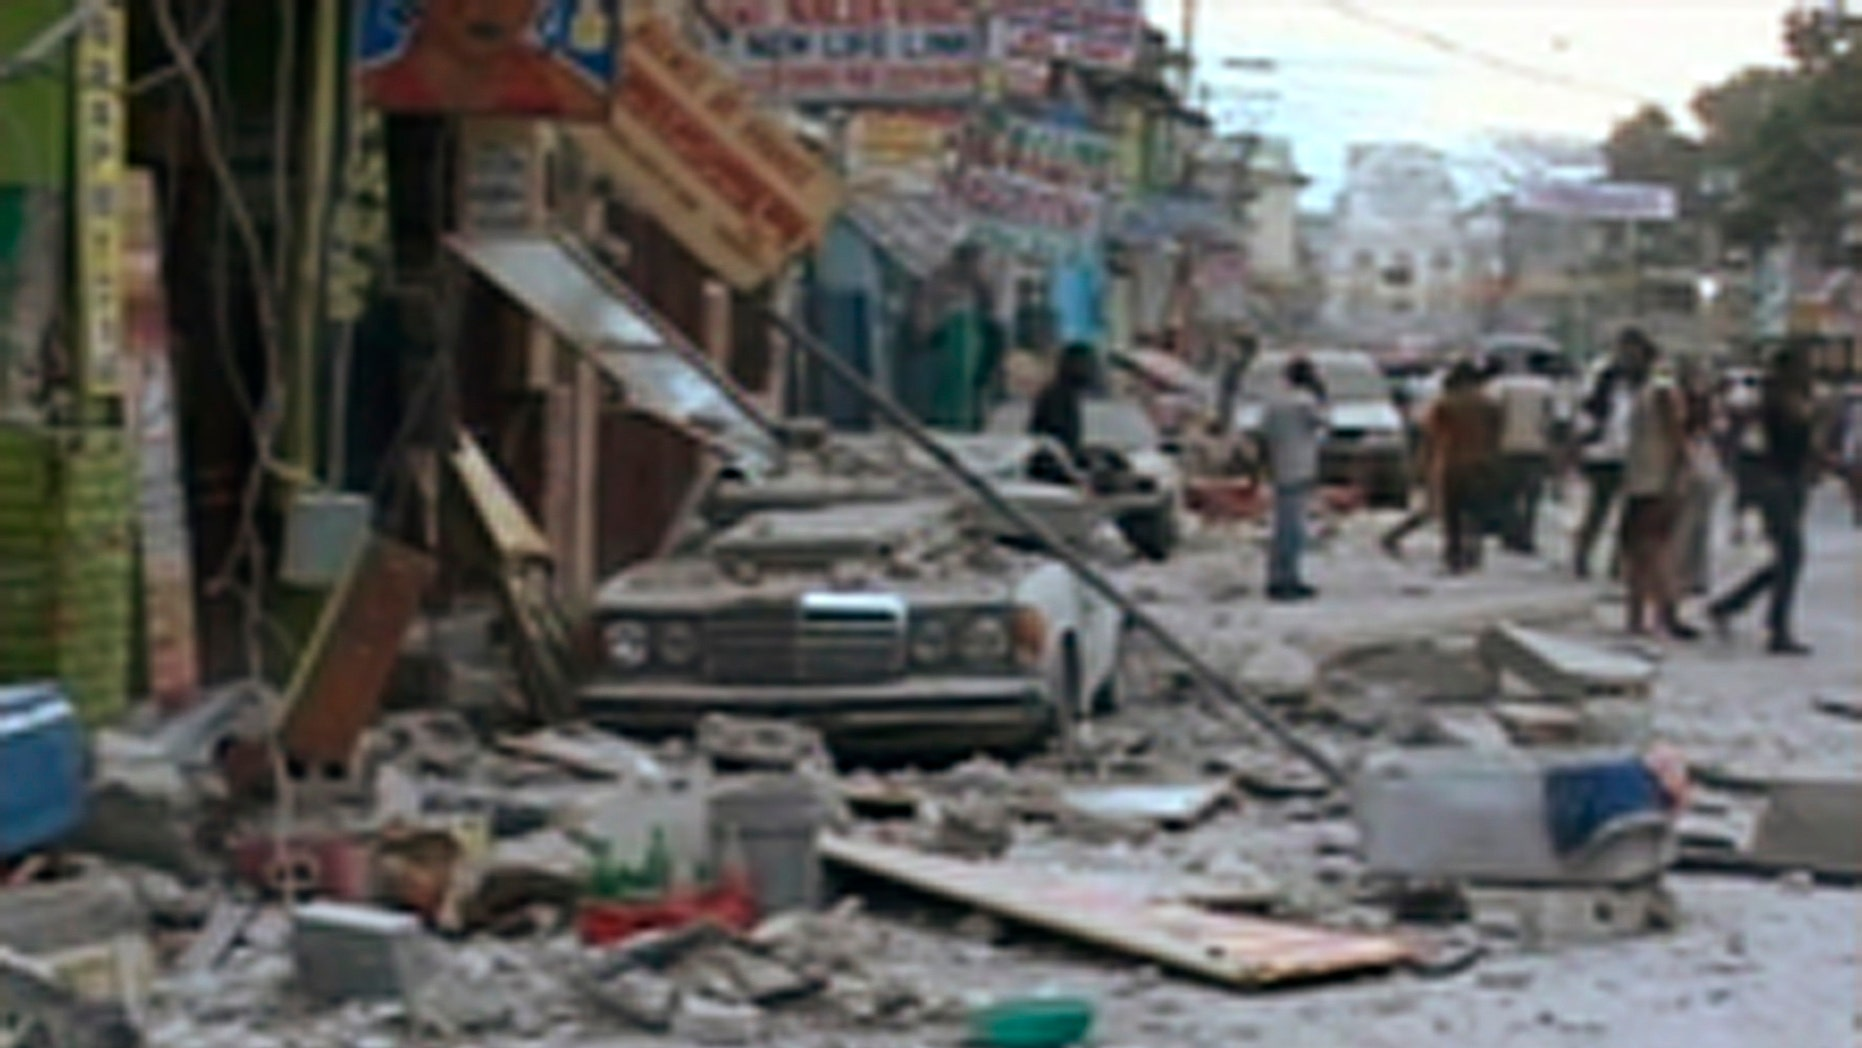 A car damaged after an earthquake struck is seen in Port-au-Prince in this January 12, 2010 video grab. A major earthquake hit impoverished Haiti on Tuesday, toppling buildings in the capital Port-au-Prince, burying residents in rubble and causing many deaths and injuries, witnesses in the city said.